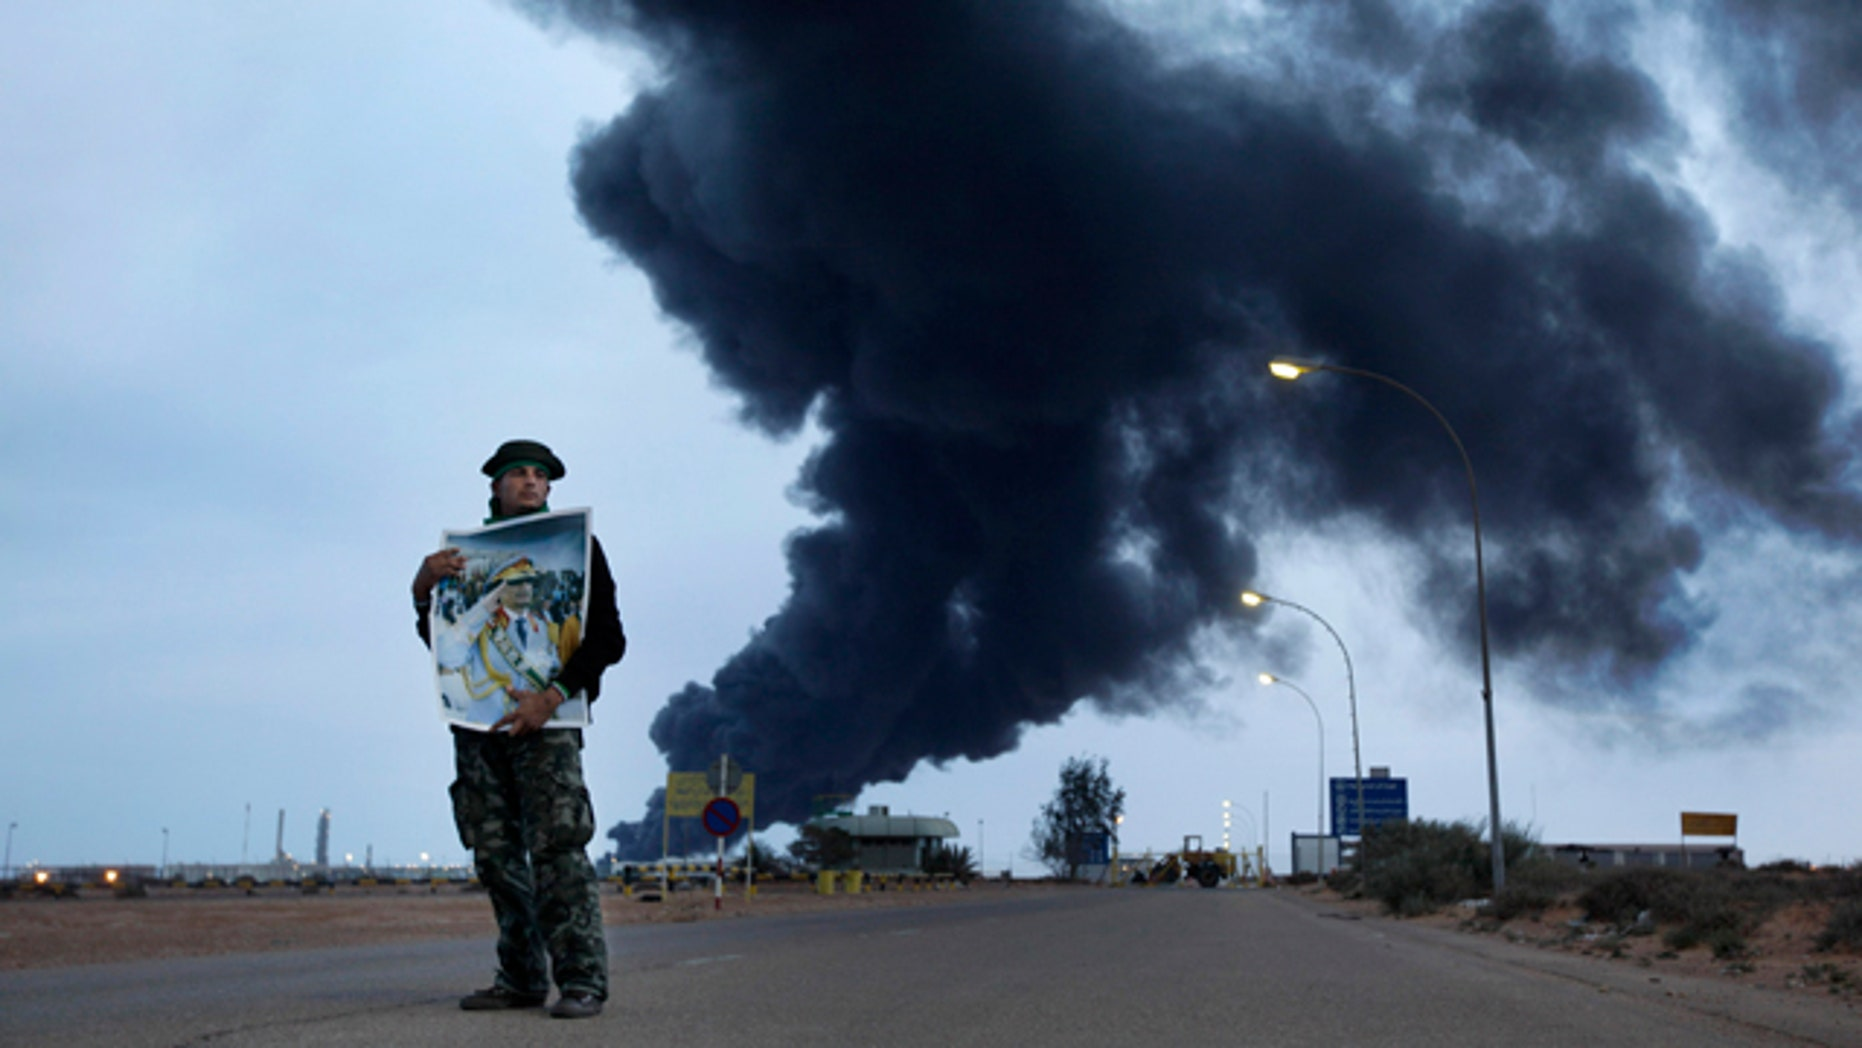 March 12, 2011: A pro-Gadhafi fighter holds a poster of Libyan Leader Moammar Gadhafi as black plume of smoke rises from the burning oil refinery as they are pictured during a government-organized visit for foreign media in Ras Lanouf, Libya